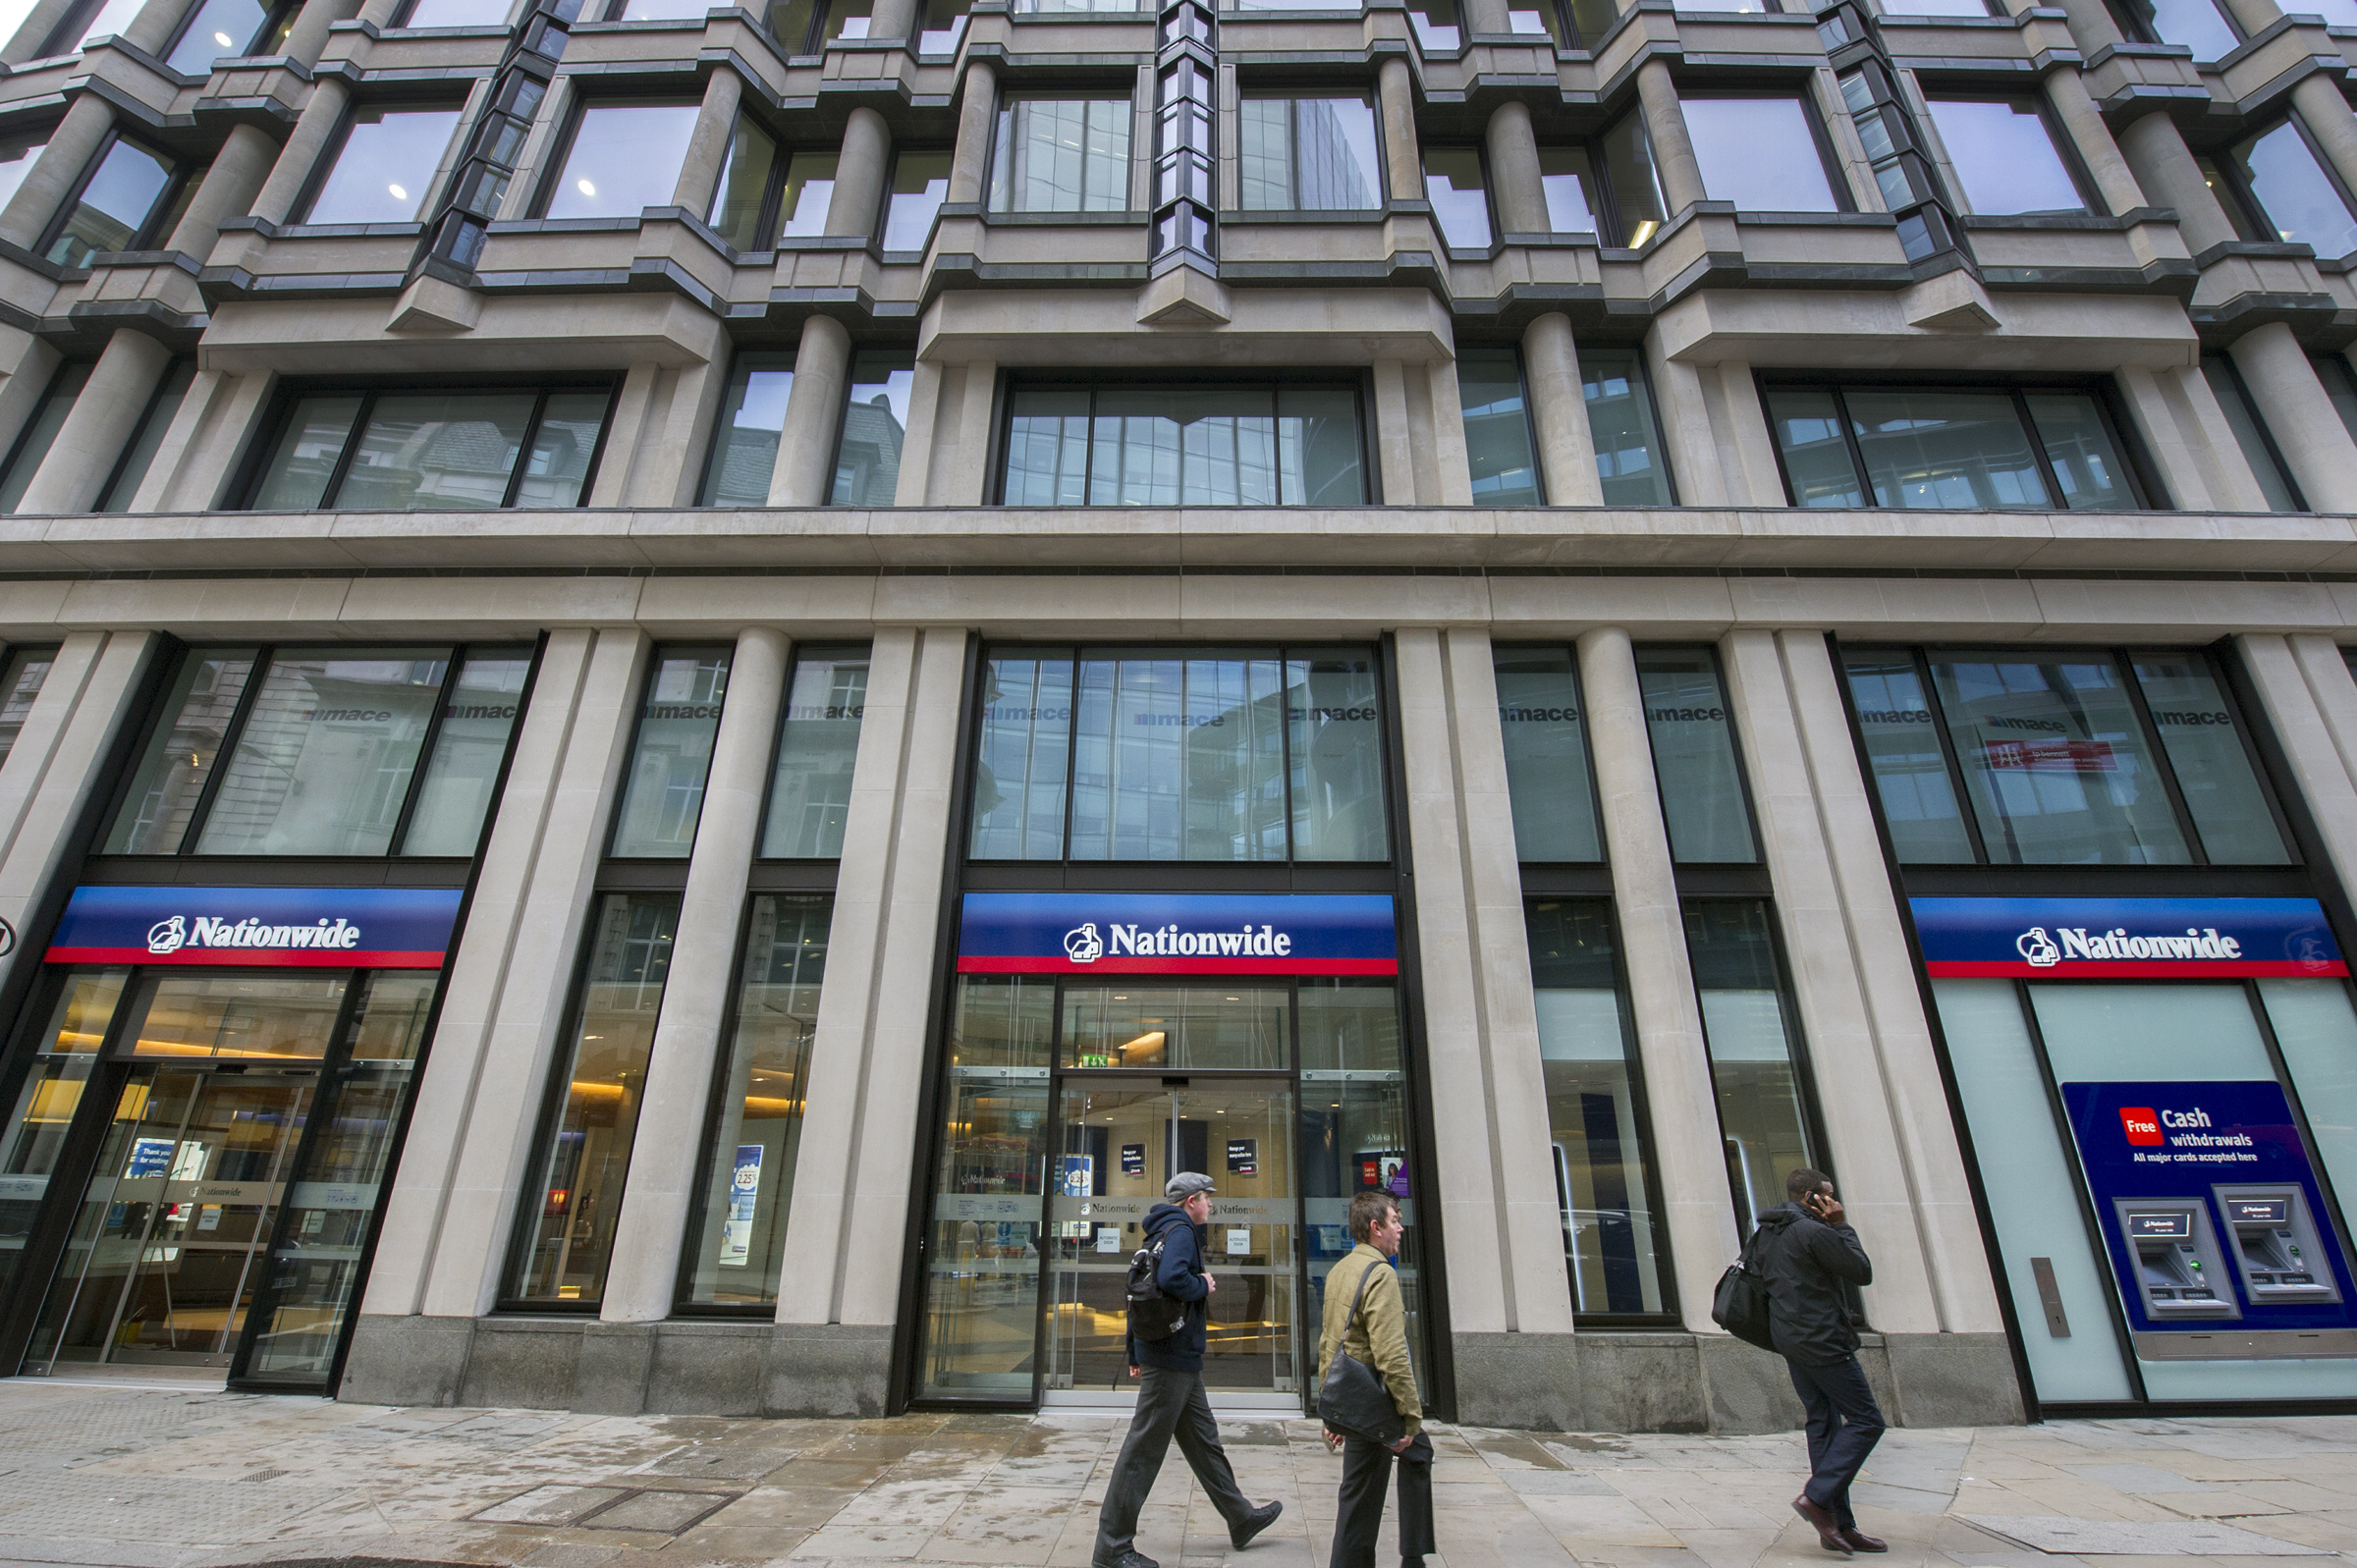 Nationwide scraps high-interest savings account – Which